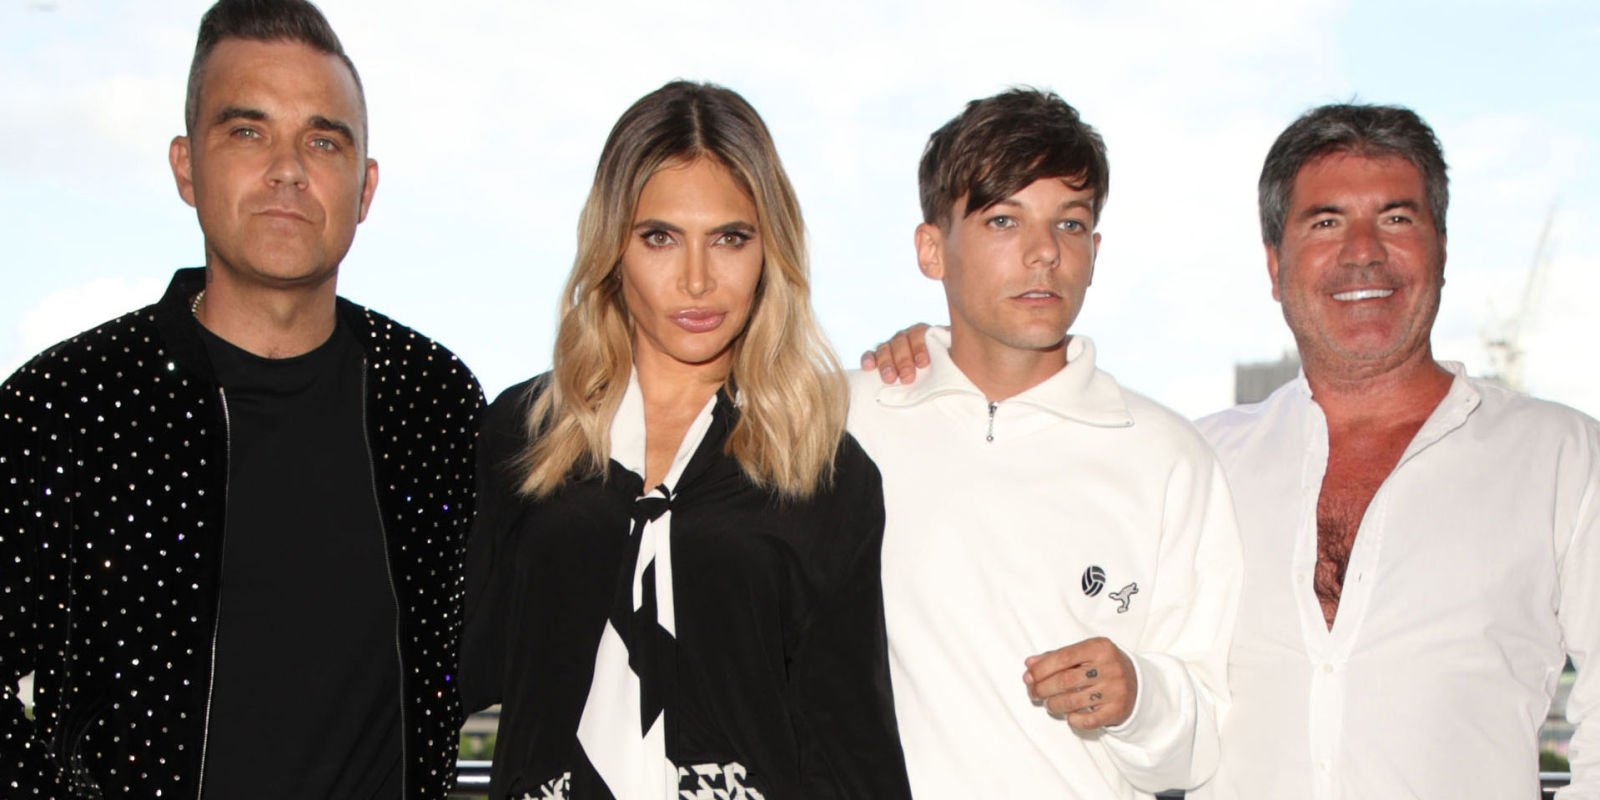 The X Factor fans really aren't happy with the new judges line-up